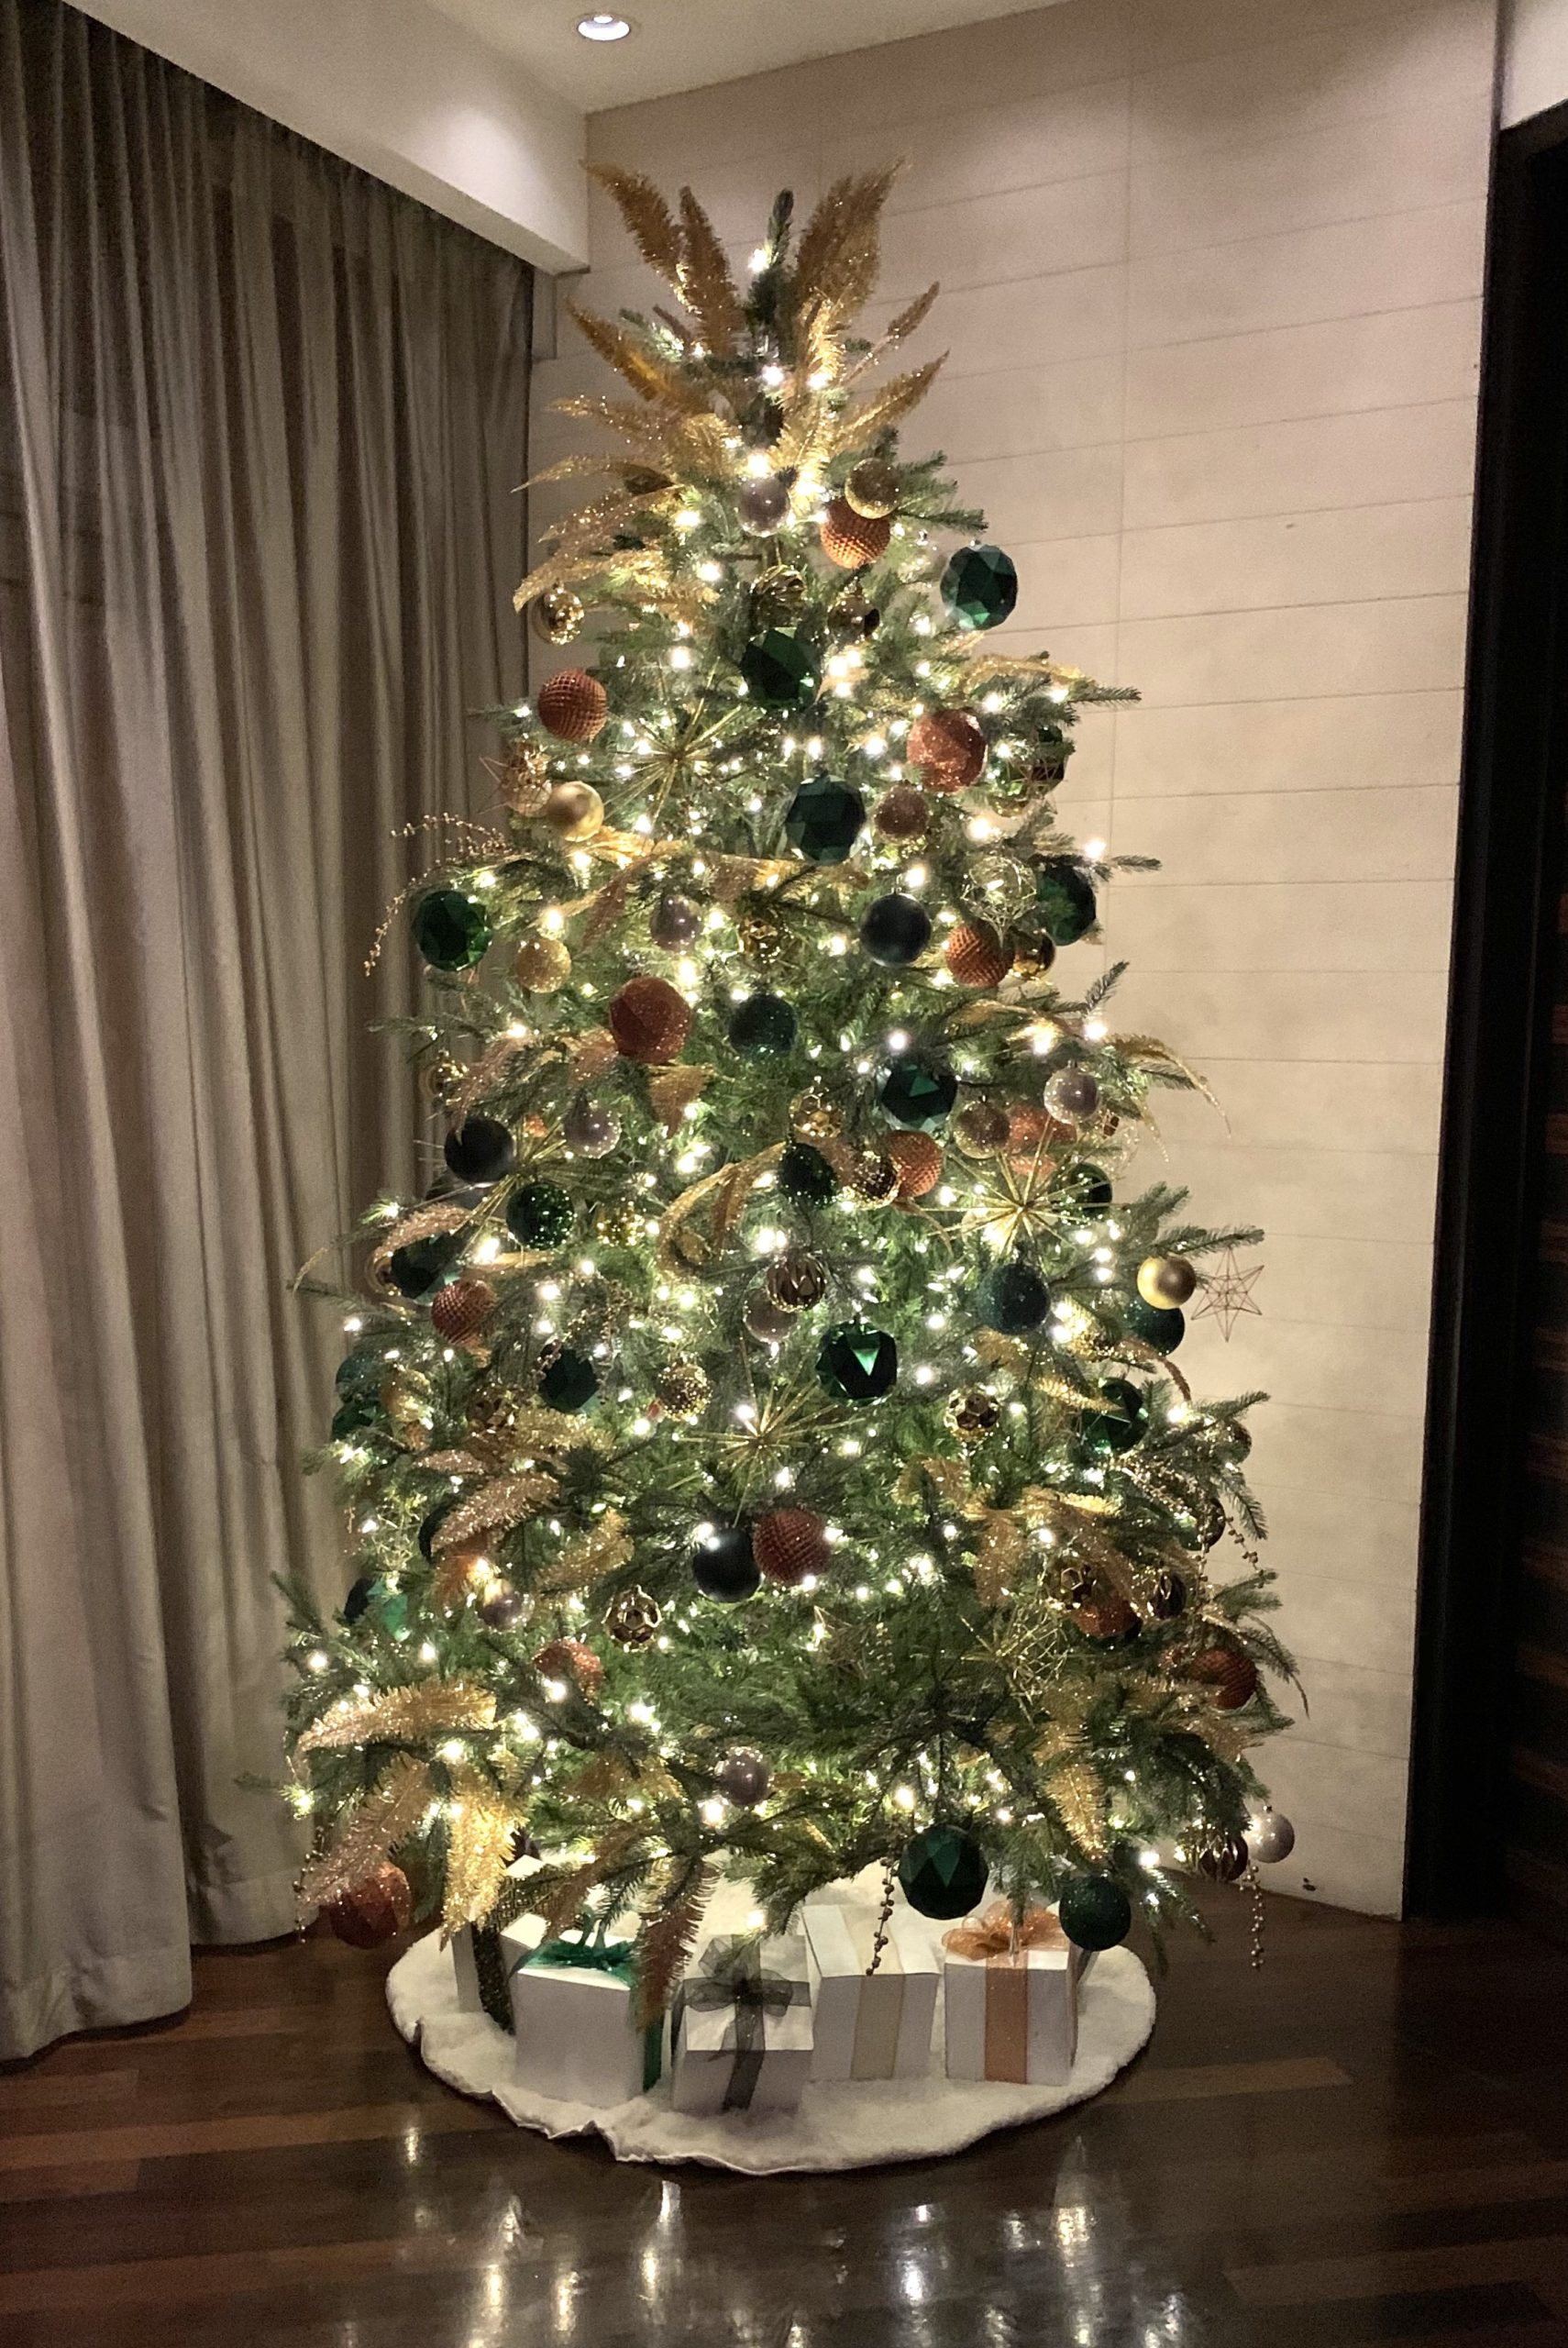 commercial christmas tree in hotel lobby decorated in emerald green, copper and gold geometric decor